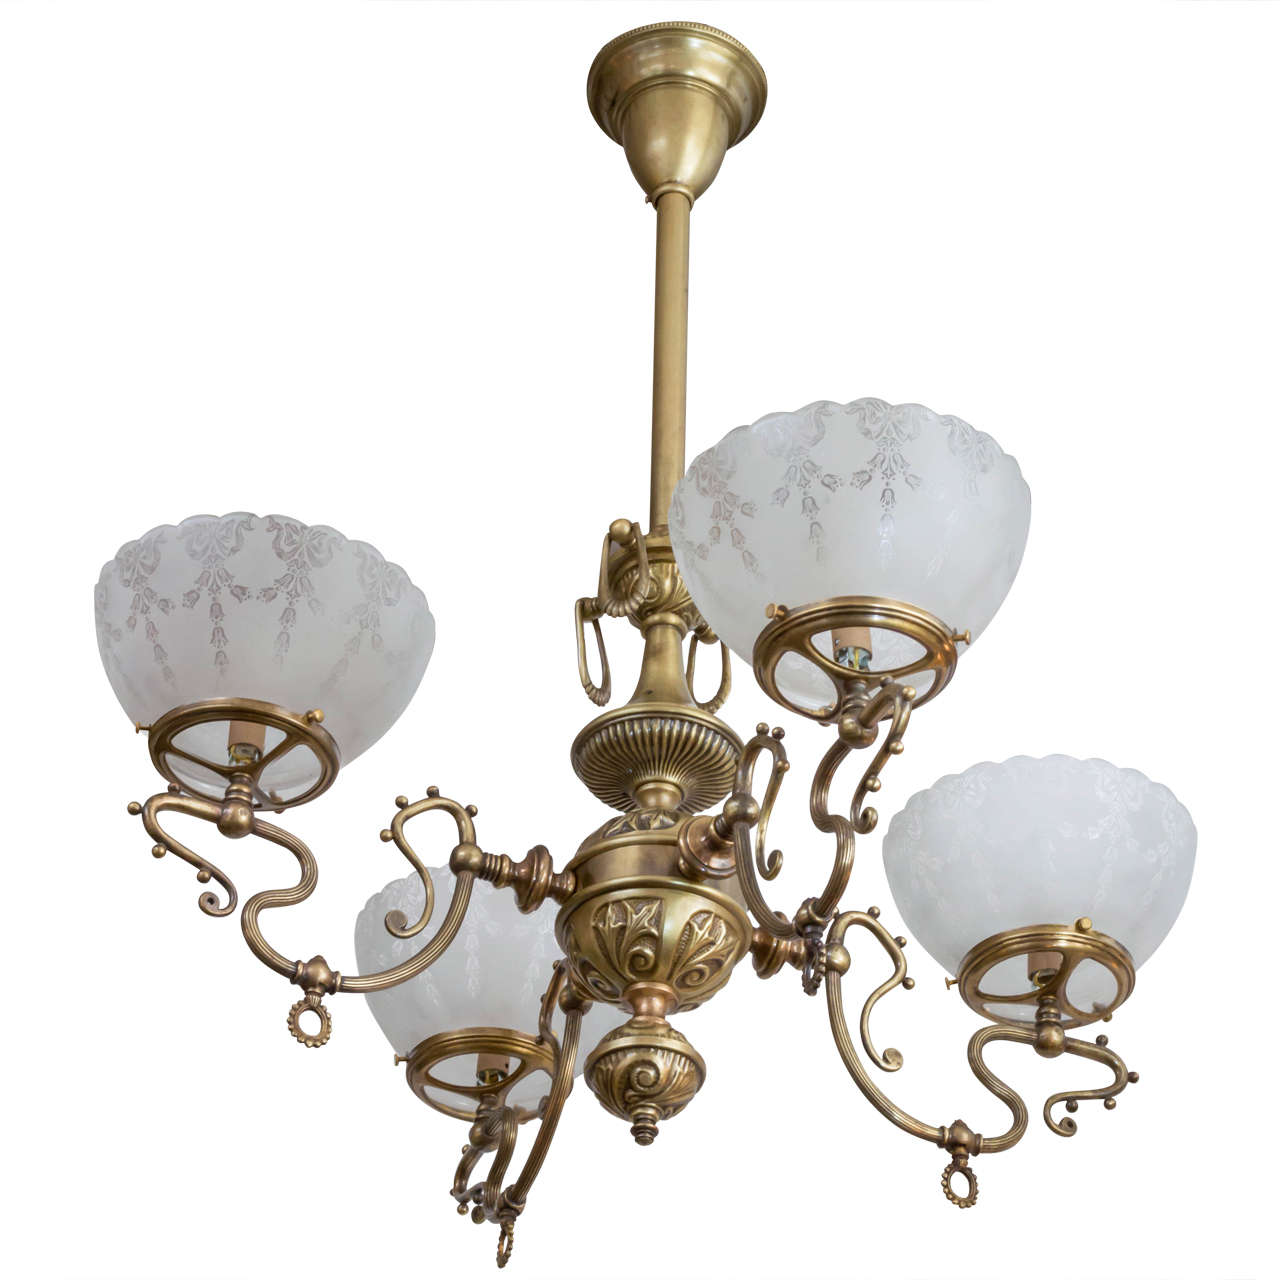 Late victorian four arm gas chandelier with deep etched glass late victorian four arm gas chandelier with deep etched glass shades for sale mozeypictures Image collections